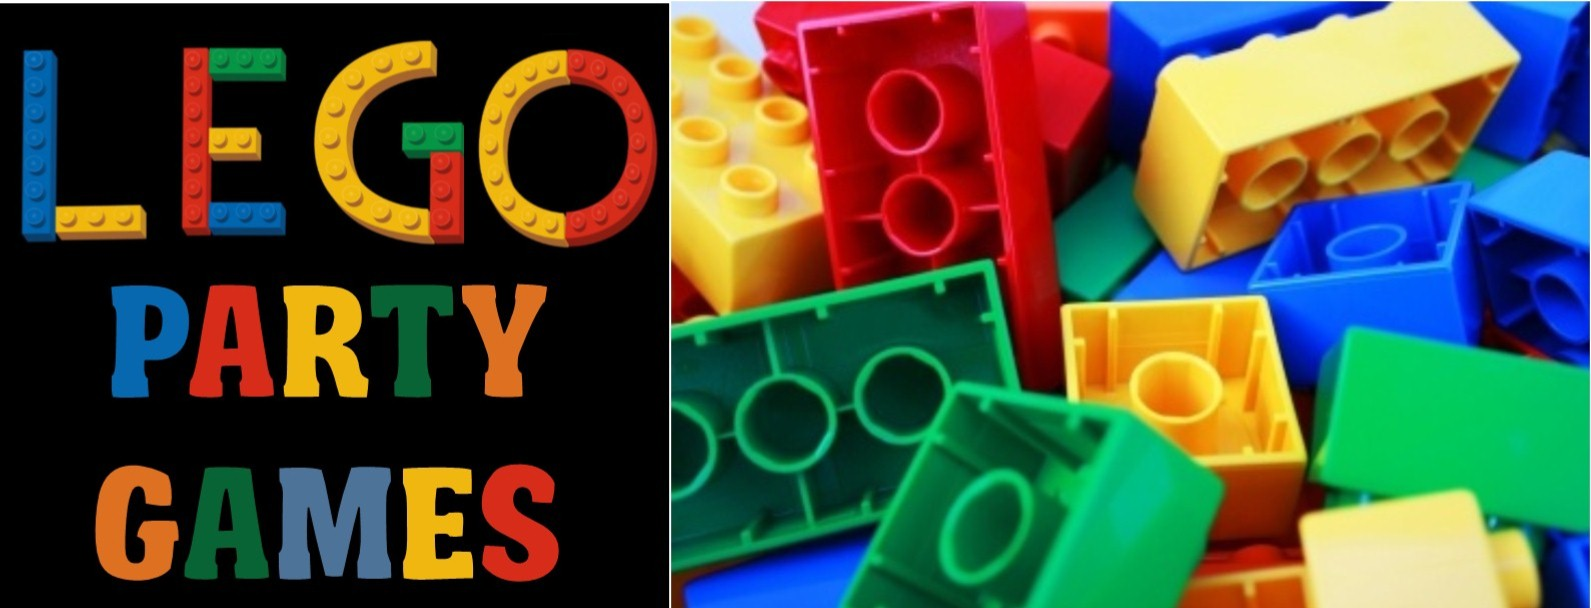 fun lego birthday party theme games